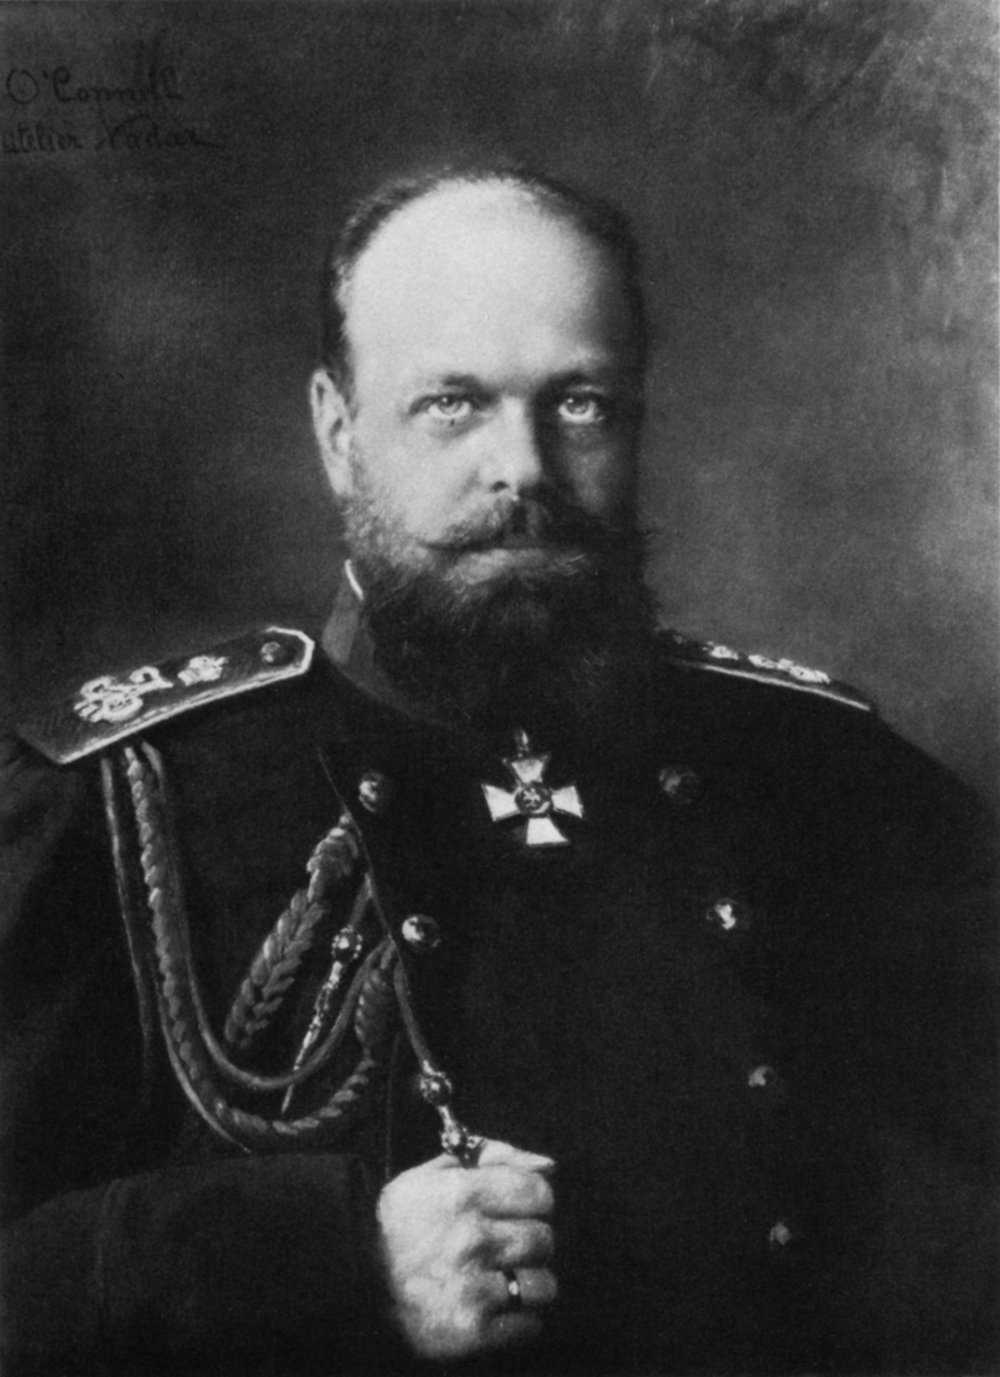 Tsar Alexander III of the Russian Empire. He ruled following the assassination of his father in 1881 until his early death at the age of 49 in 1894.